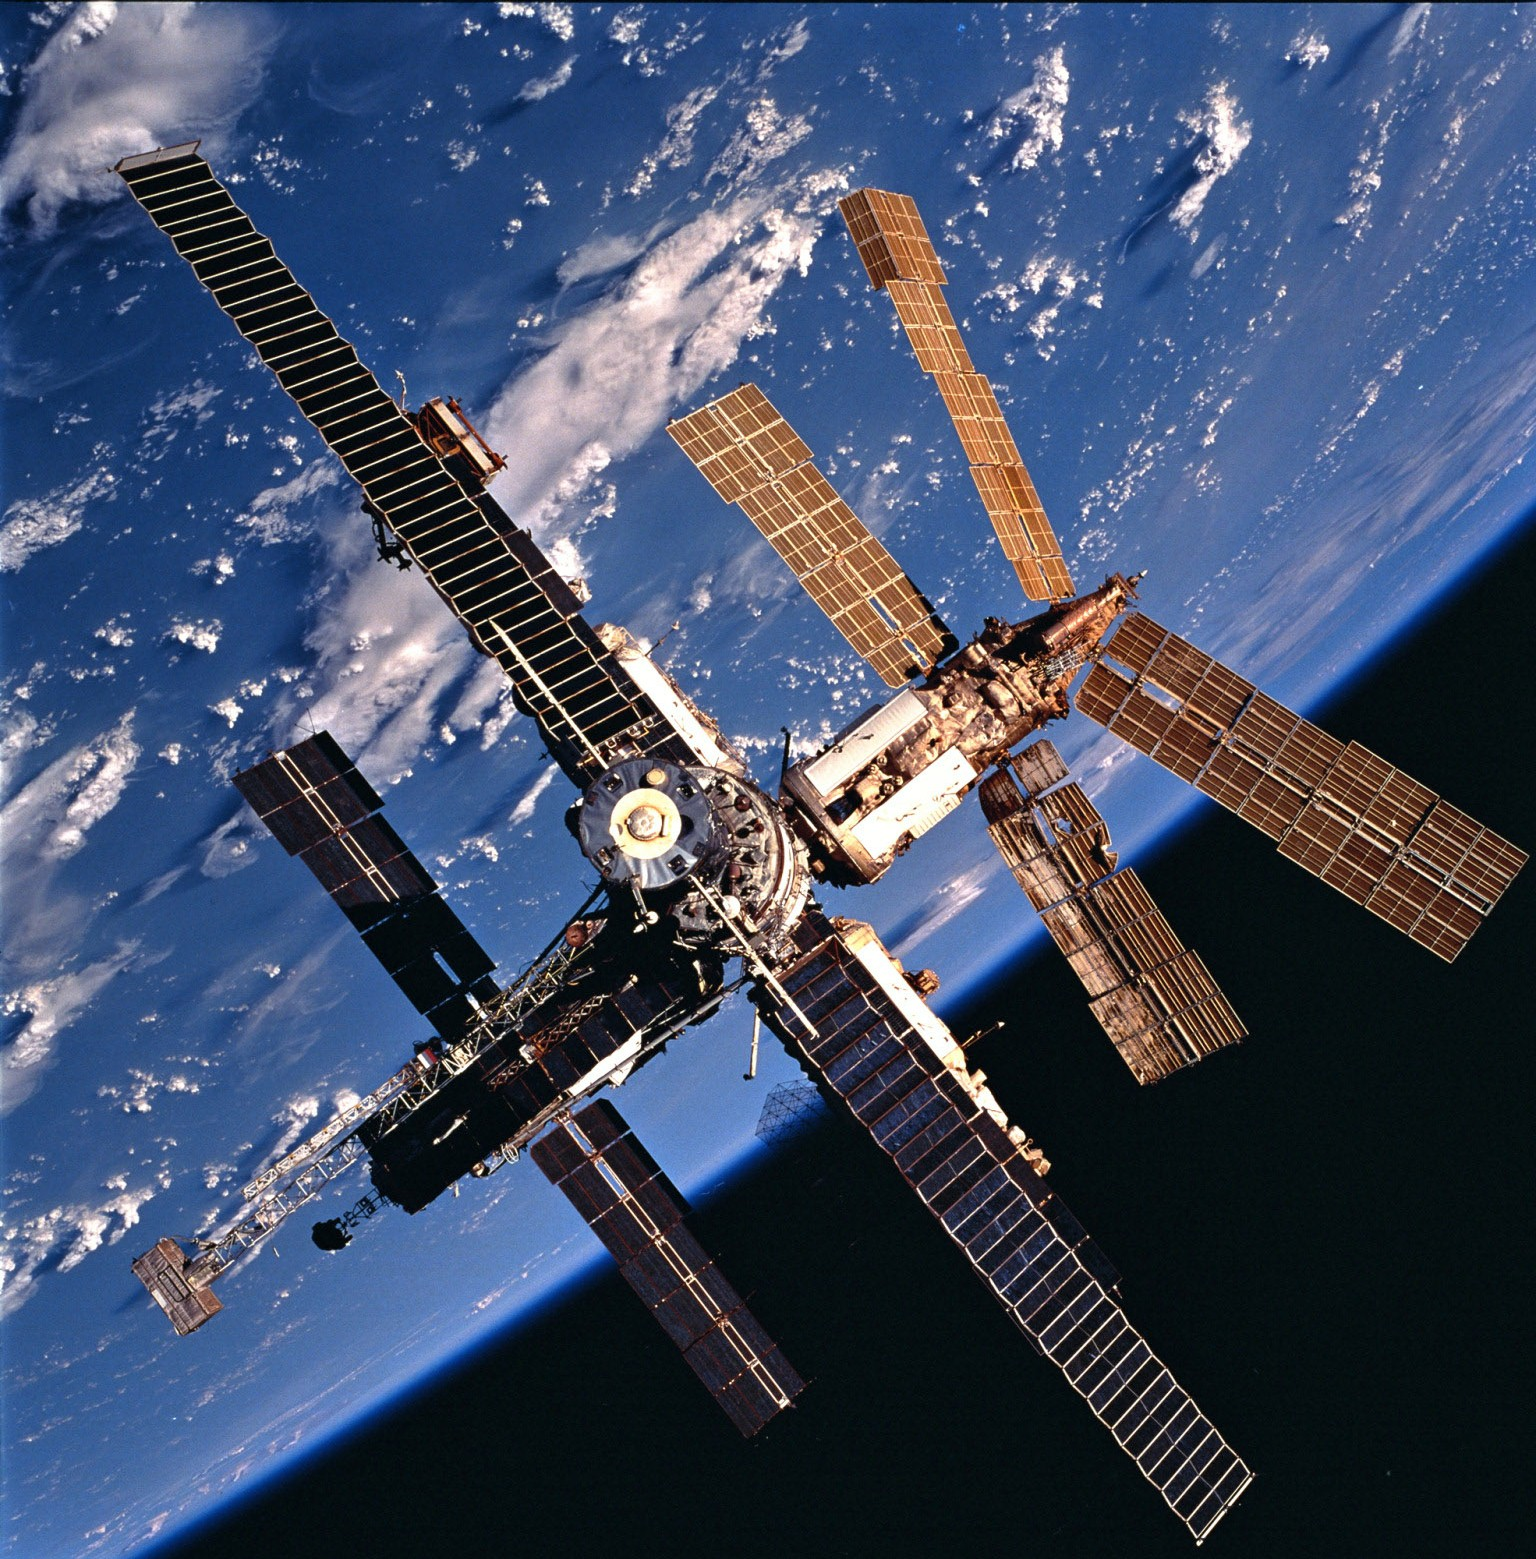 Mir Set A Precedent For Collaboration In Space  U2013 But Its Legacy Is Now At Risk